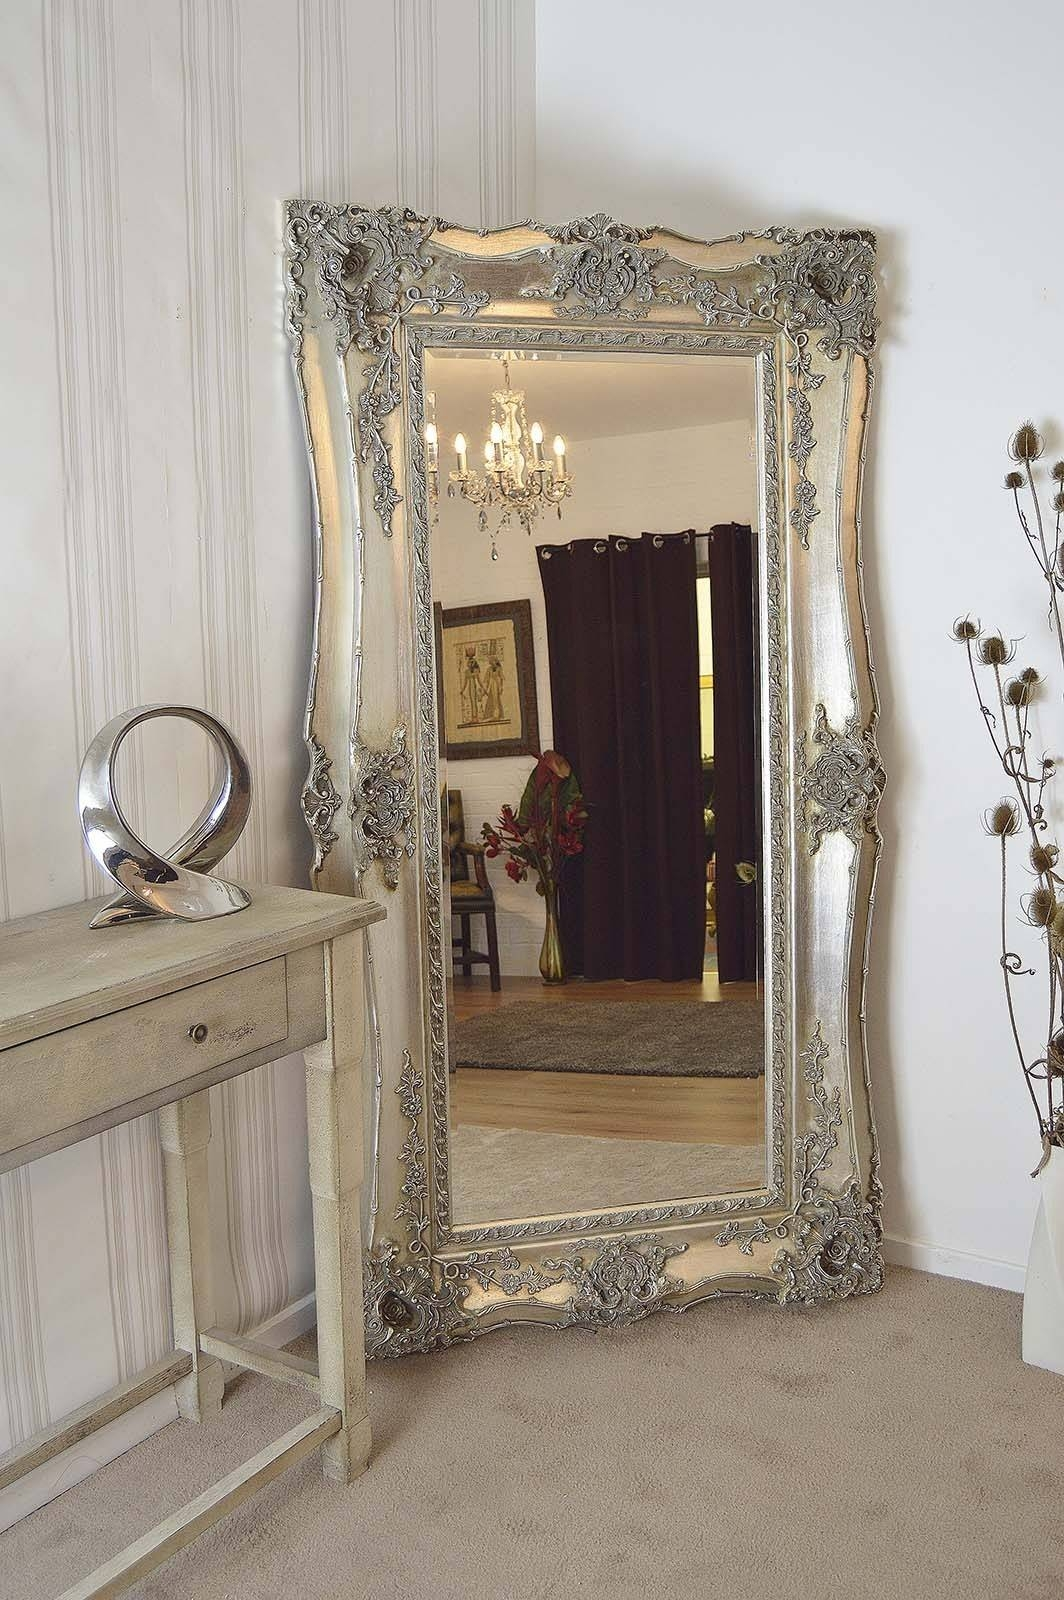 Homeware: Oval Full Length Standing Mirror | Large Floor Mirrors inside Full Length Large Mirrors (Image 19 of 25)